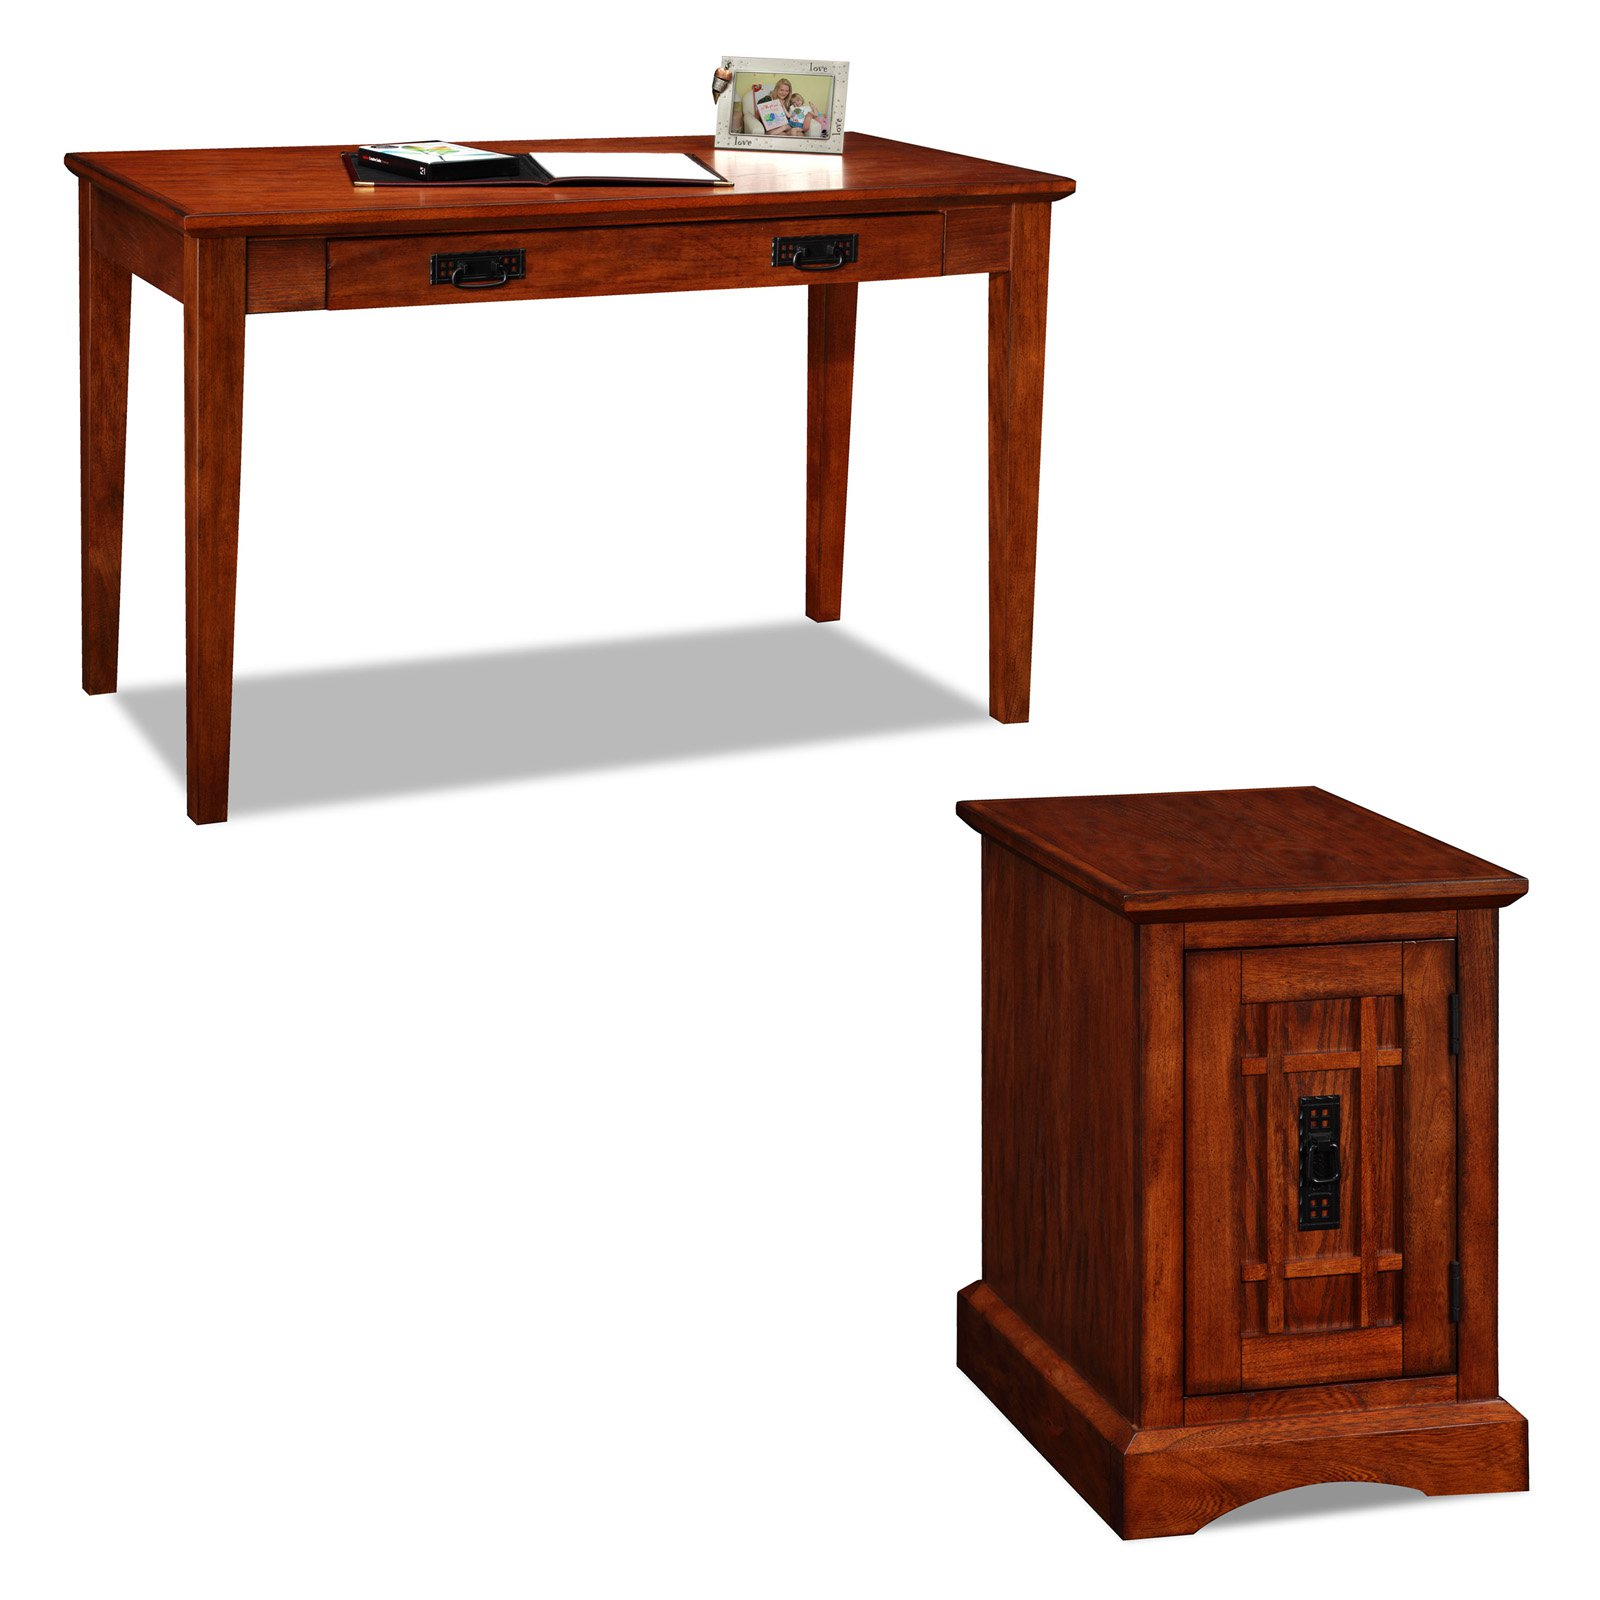 Leick Mission Laptop Desk with Printer Stand - Oak